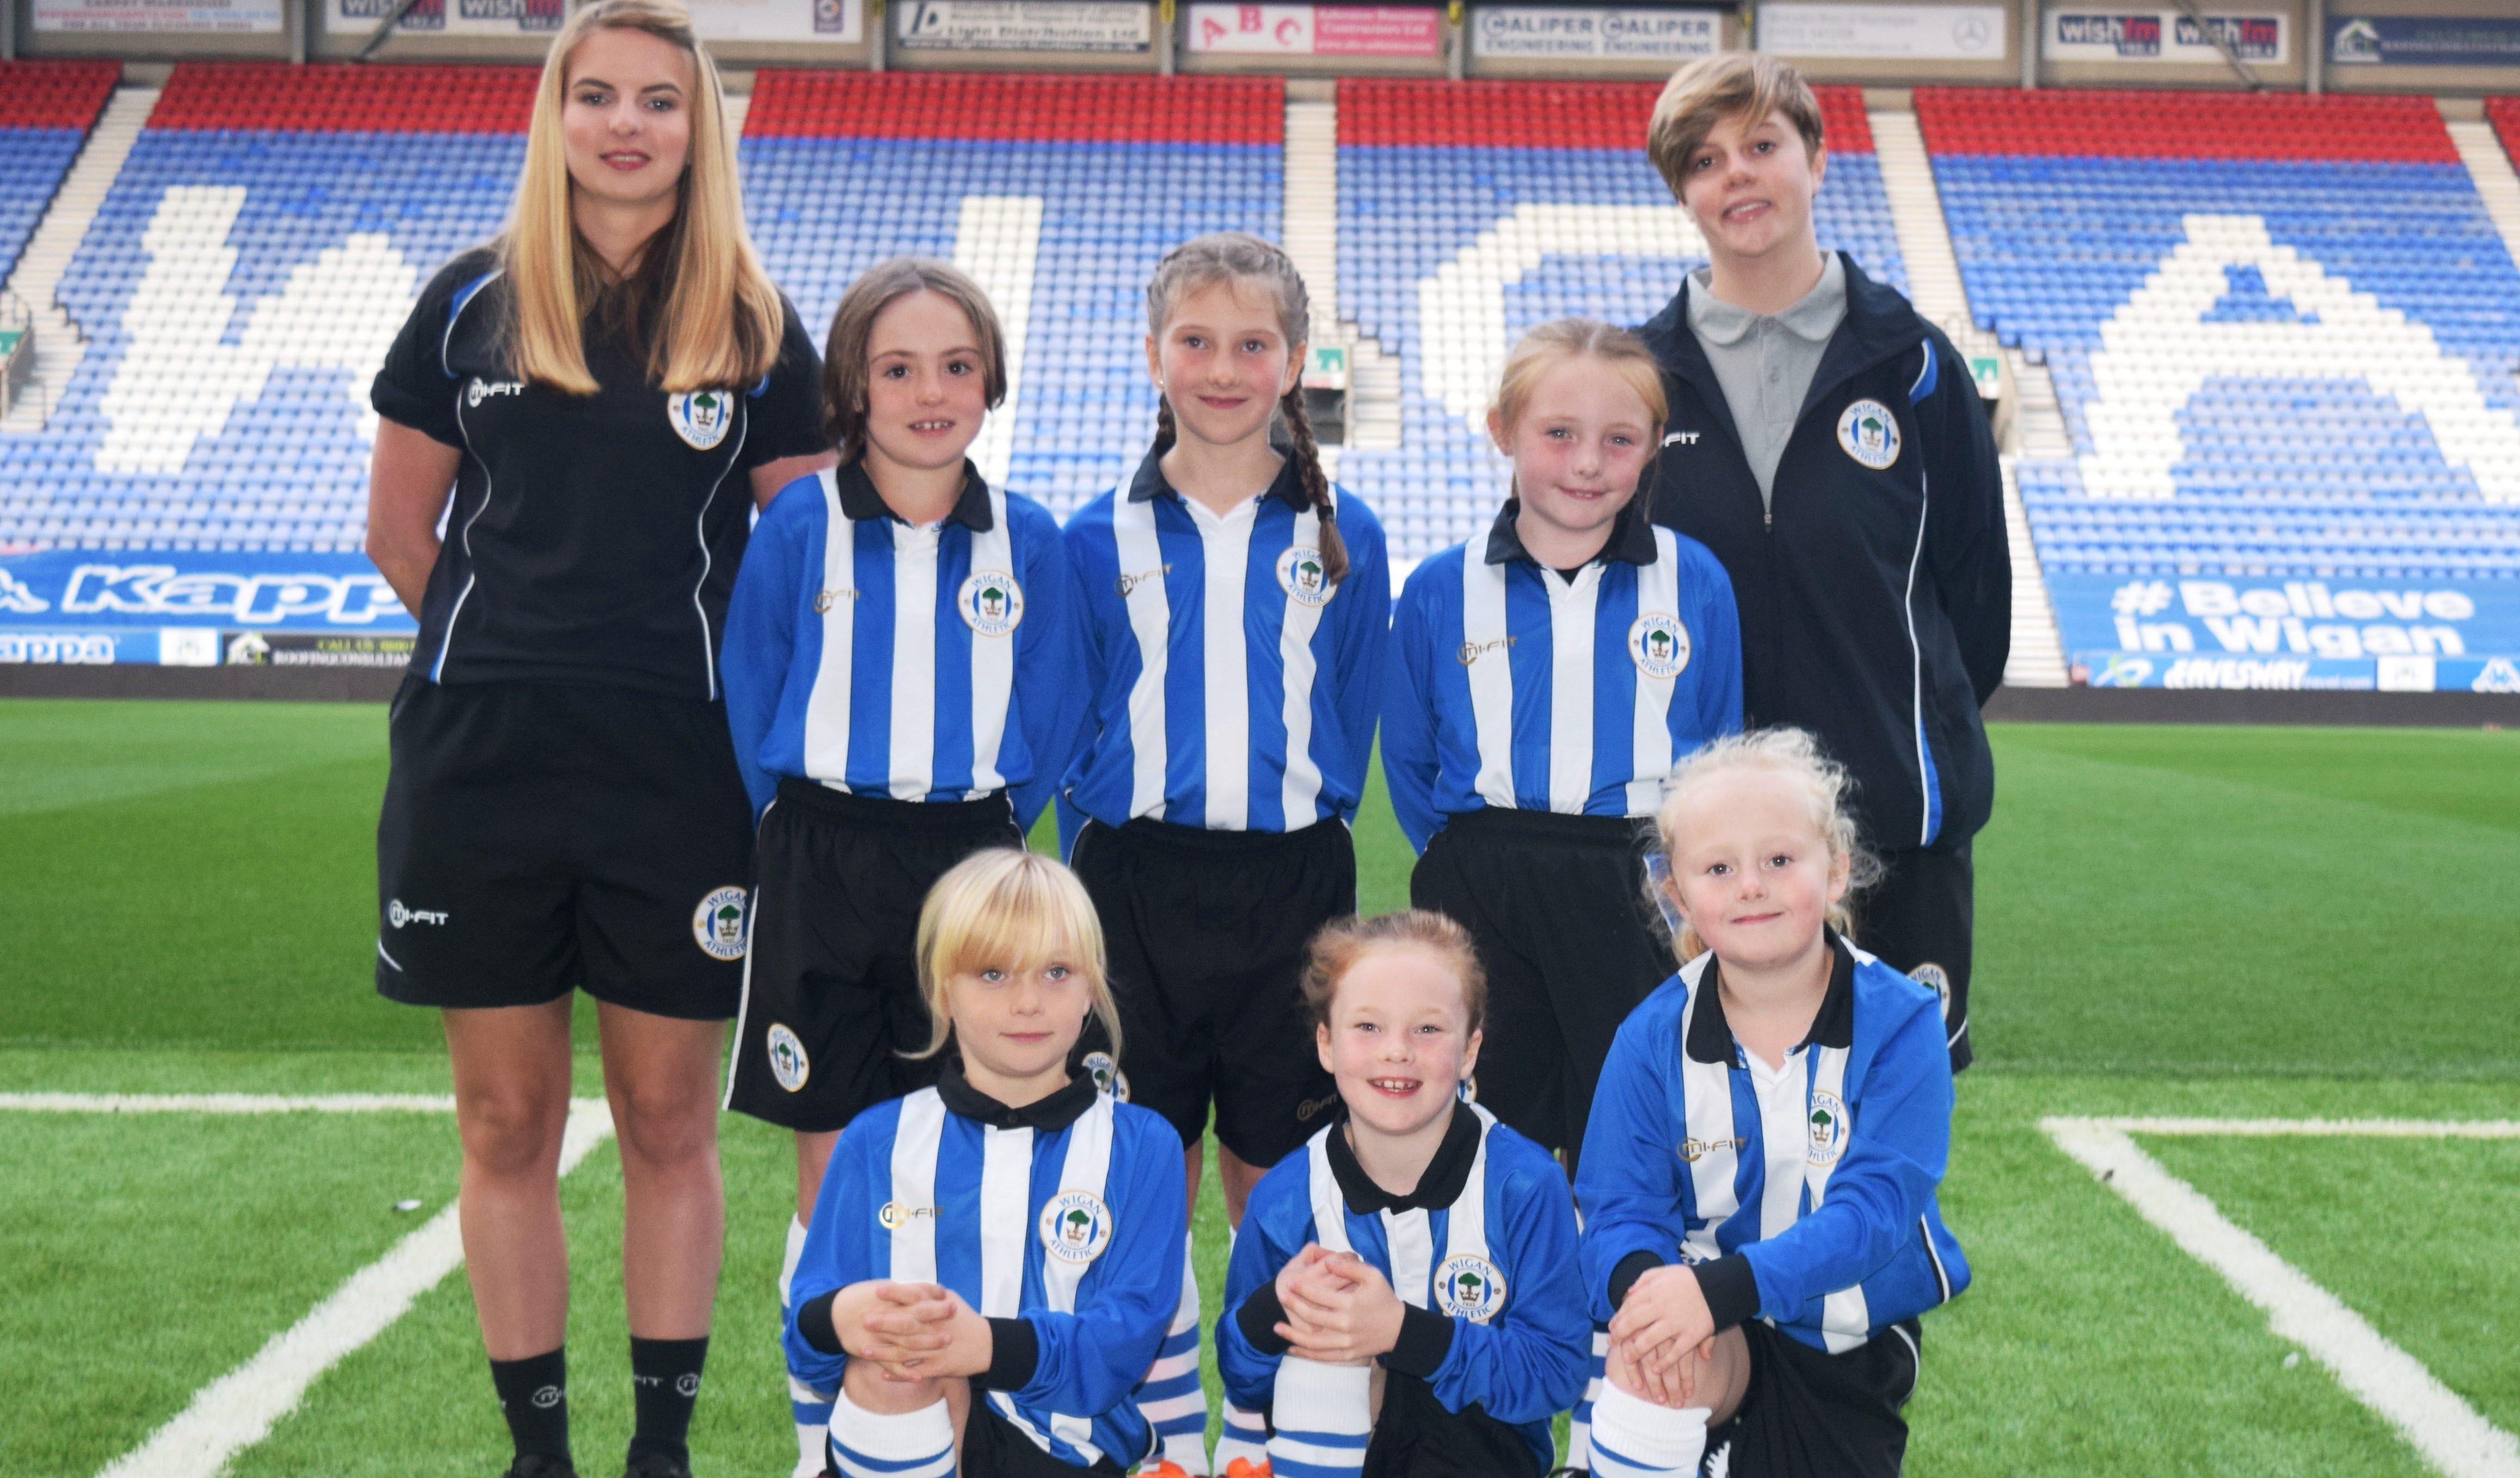 Wigan girls